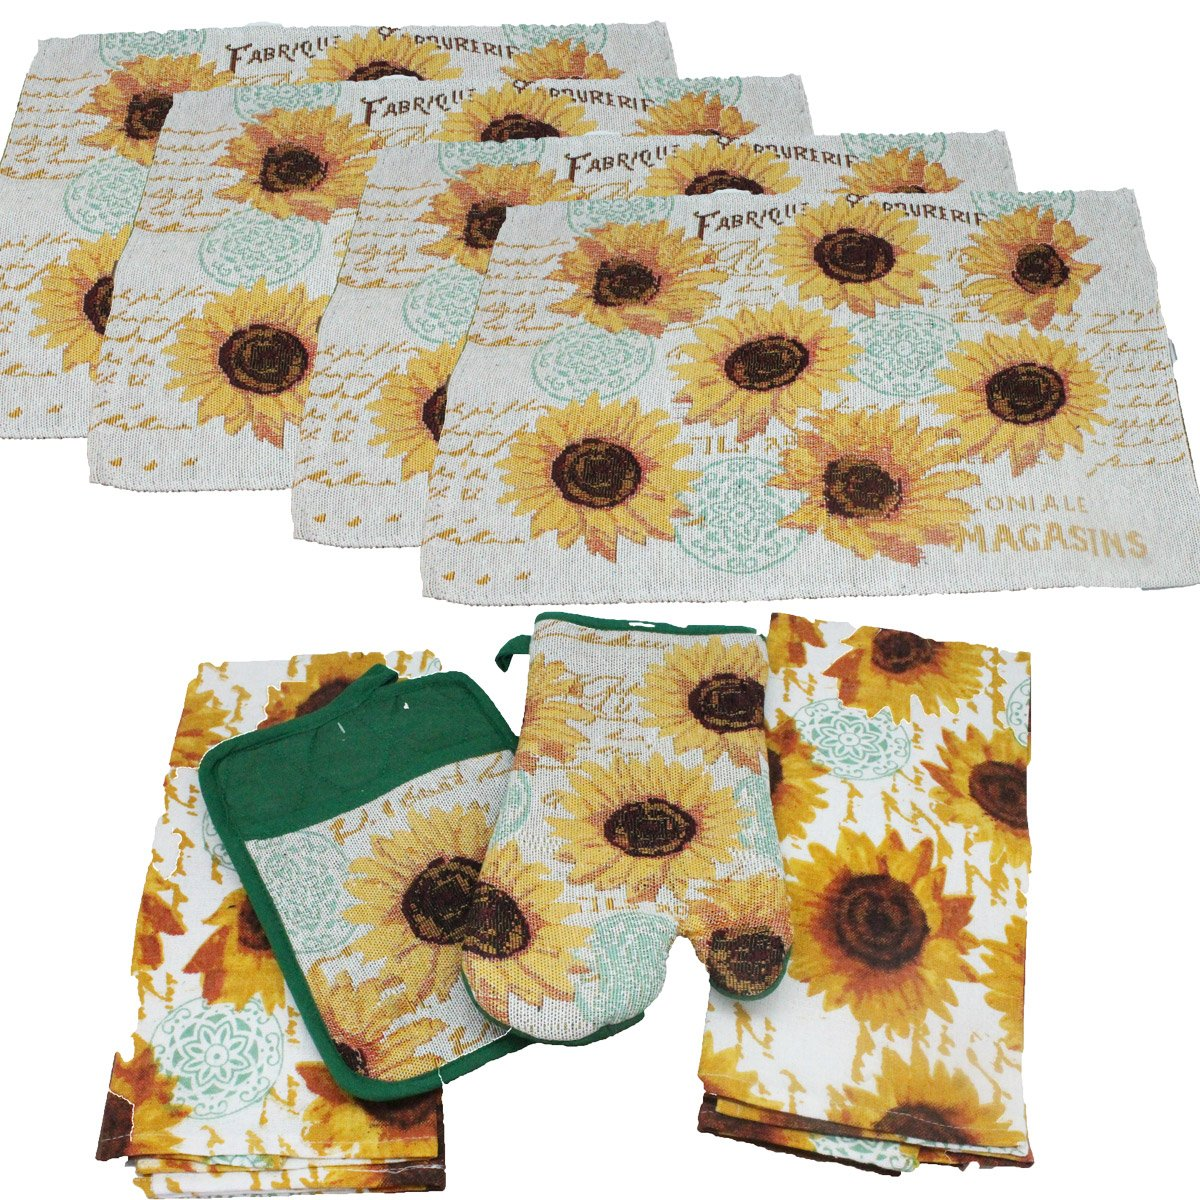 8 pc Sunflower Kitchen Towel Set - Includes Sunflower Pot Holder, 2 Sunflower Kitchen Towels, Sunflower Oven Mitt and 4 Sunflower Placemat - Comes in an Organza Bag so It